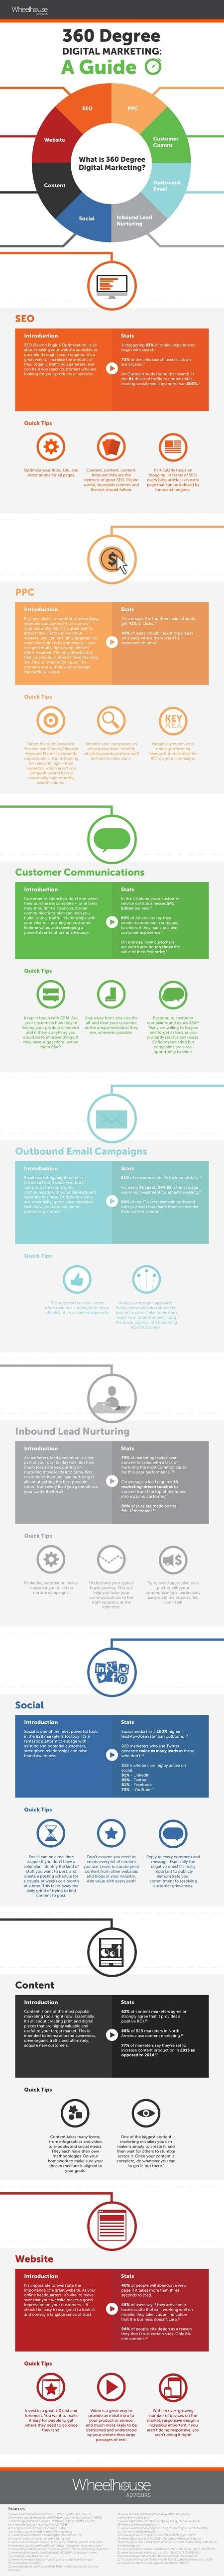 Marketing Strategy - Tips for Creating a 360-Degree Approach to Your Digital Marketing [Infographic] : MarketingProfs Article